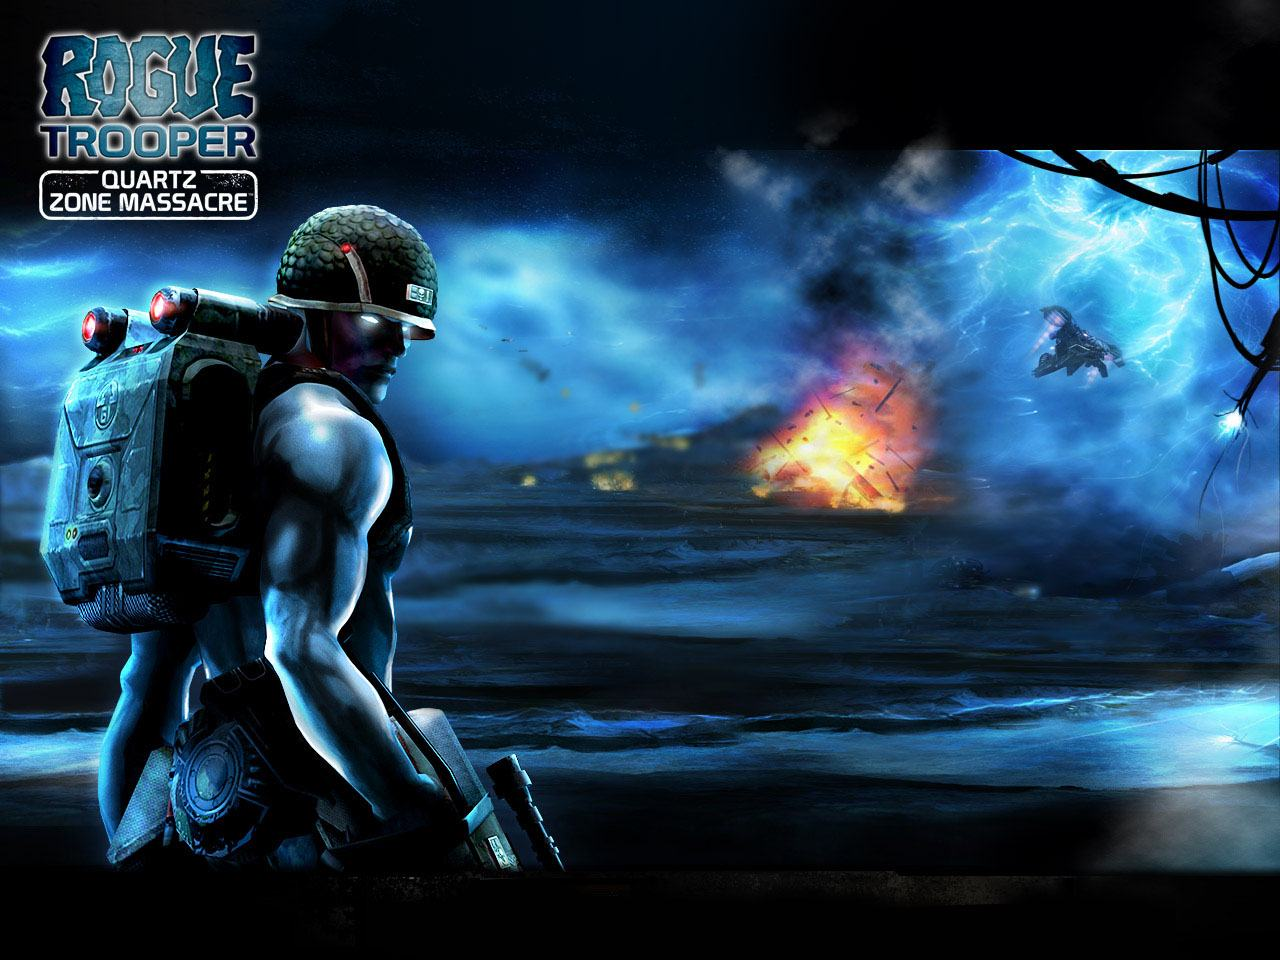 Обои Rogue Trooper: Quartz Zone Massacre 1280x960